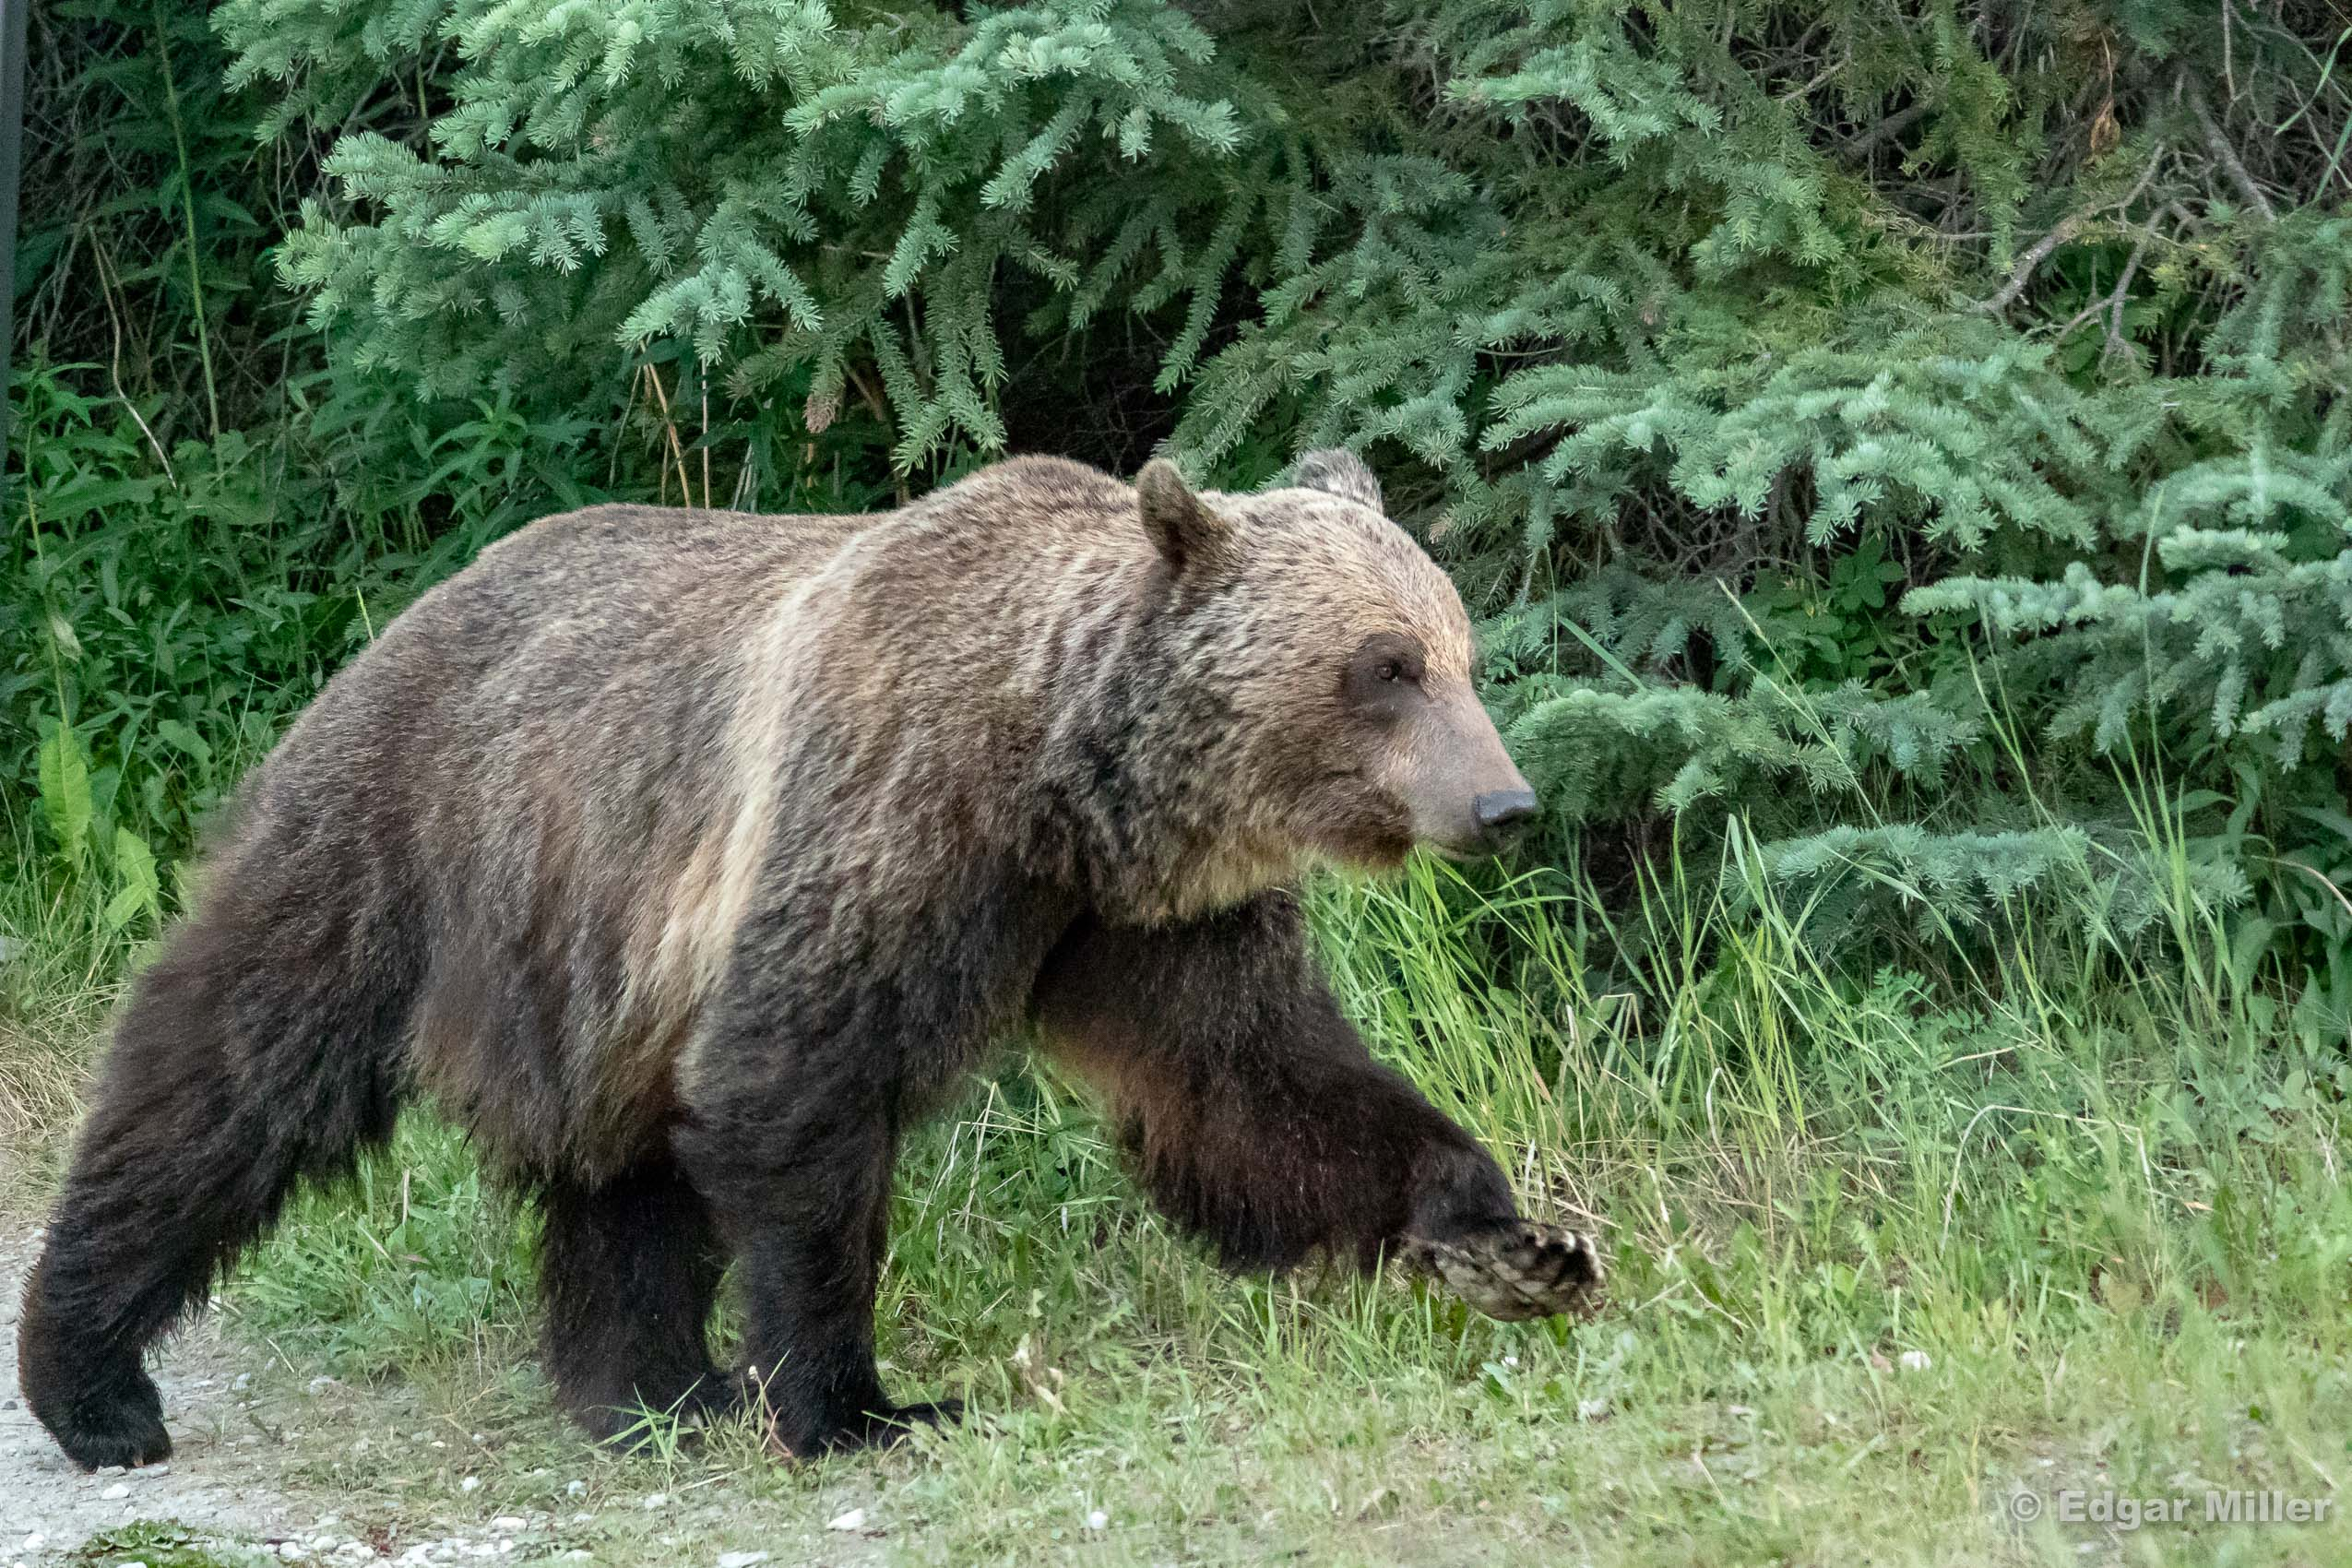 Grizzly Bear 126, Kootenay National Park, Canada